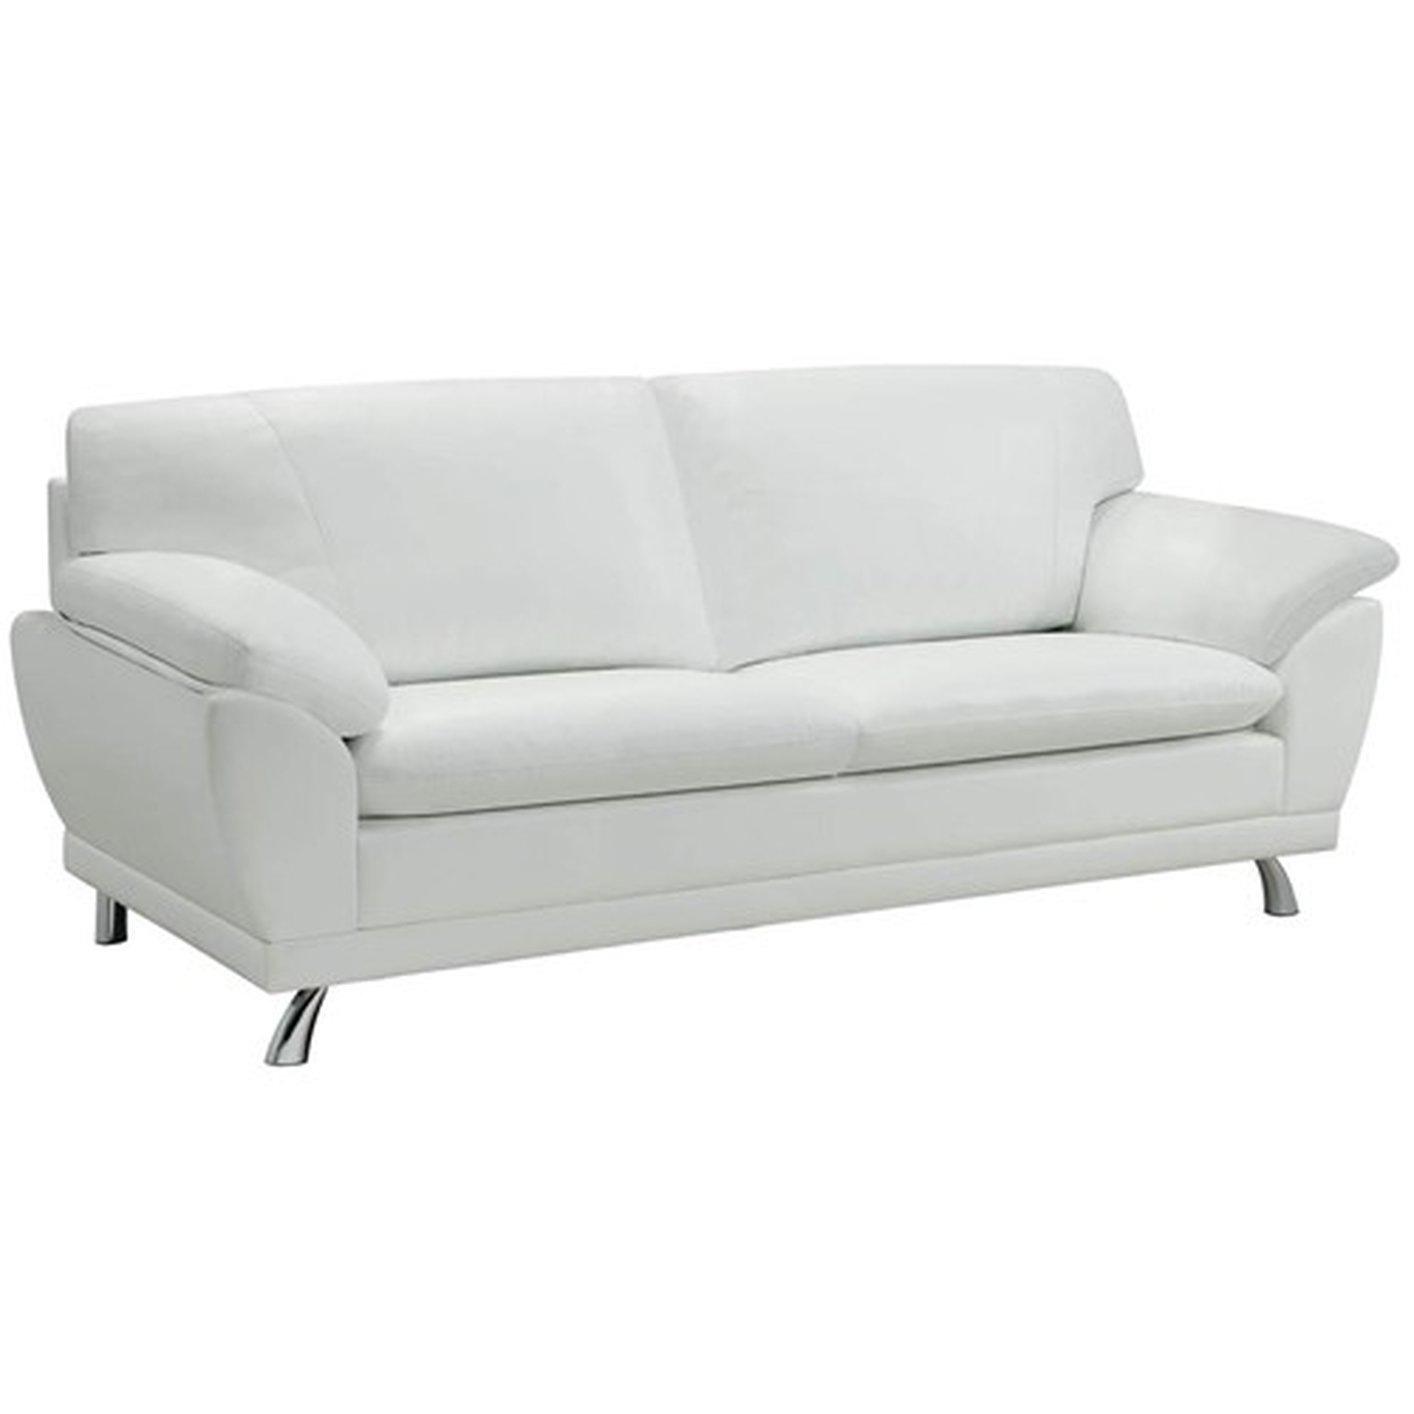 robyn white leather sofa robyn white leather sofa - White Leather Sofa